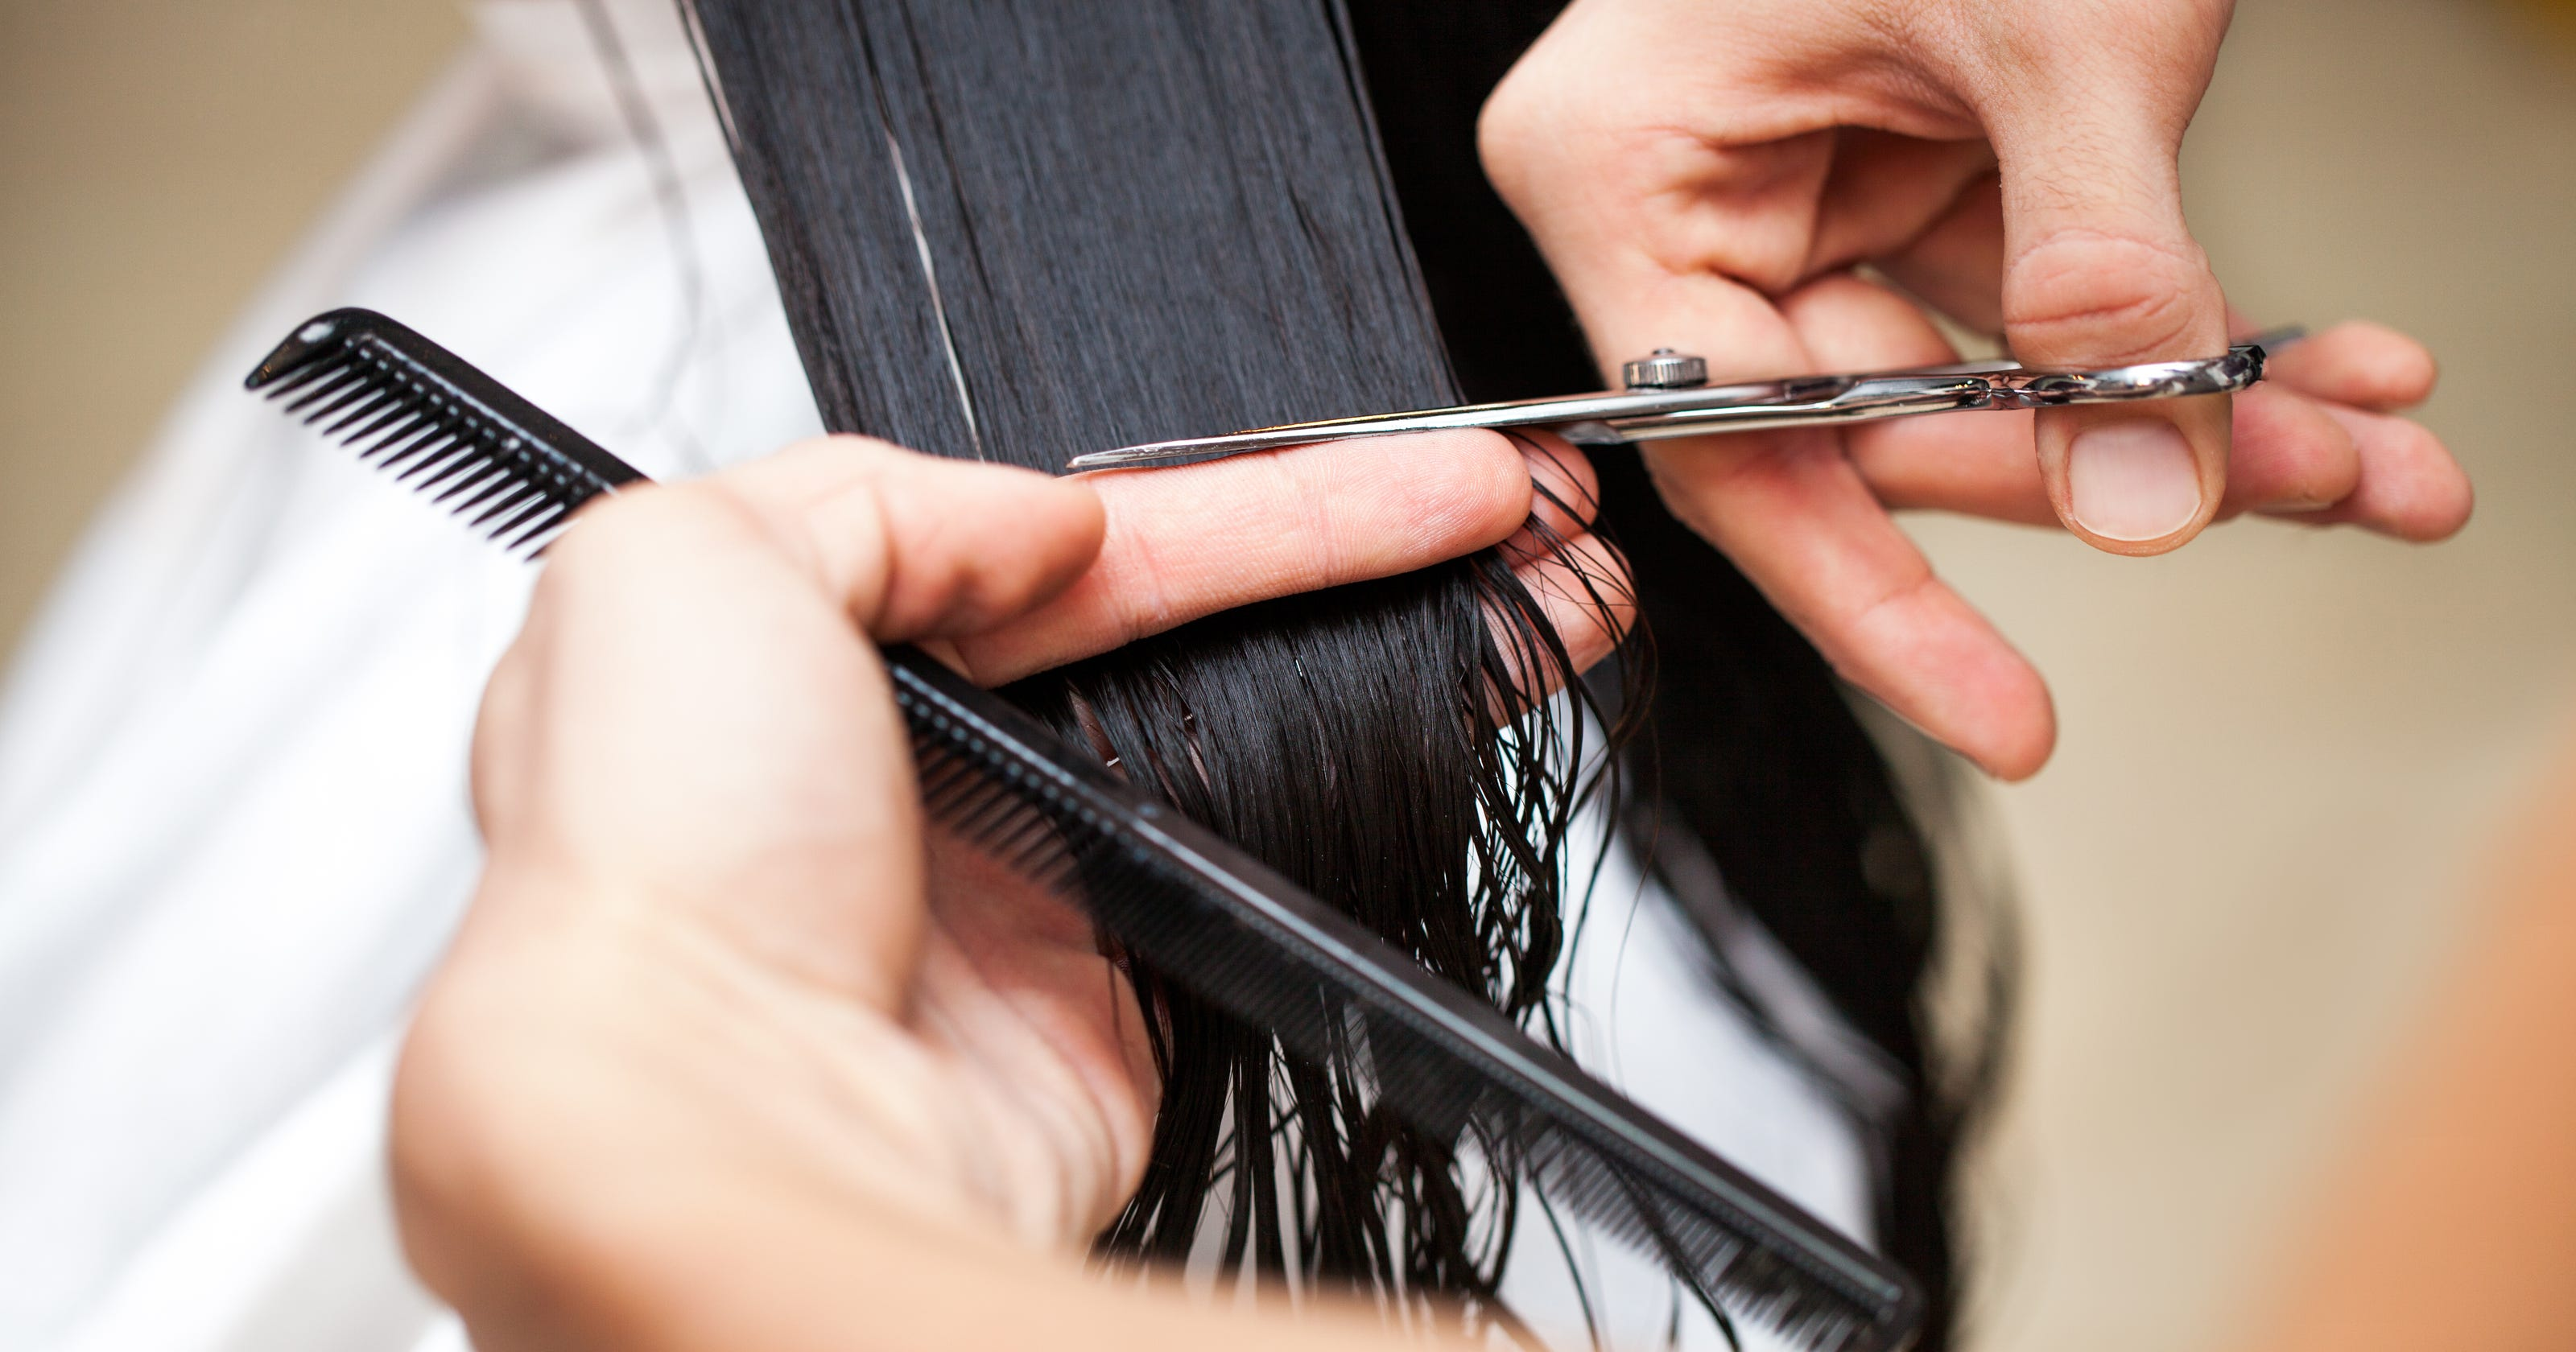 Hair Academy Students To Give Free Cuts Make Up And Manicures For